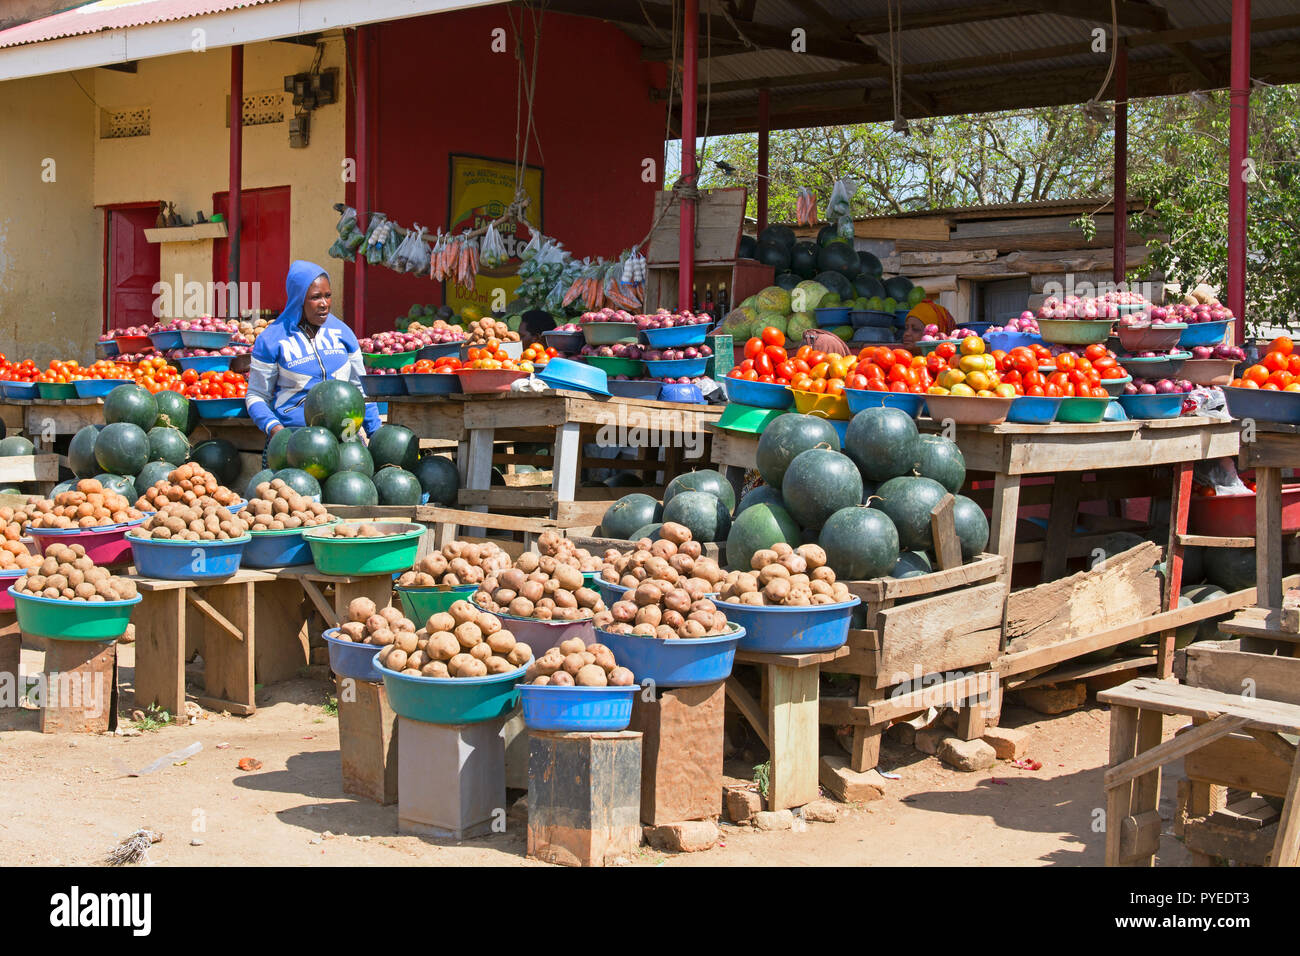 Street Vendor,  Street Vendors, Roadside Fruit and Vegetable Market,, Ankole region, Uganda, East Africa - Stock Image